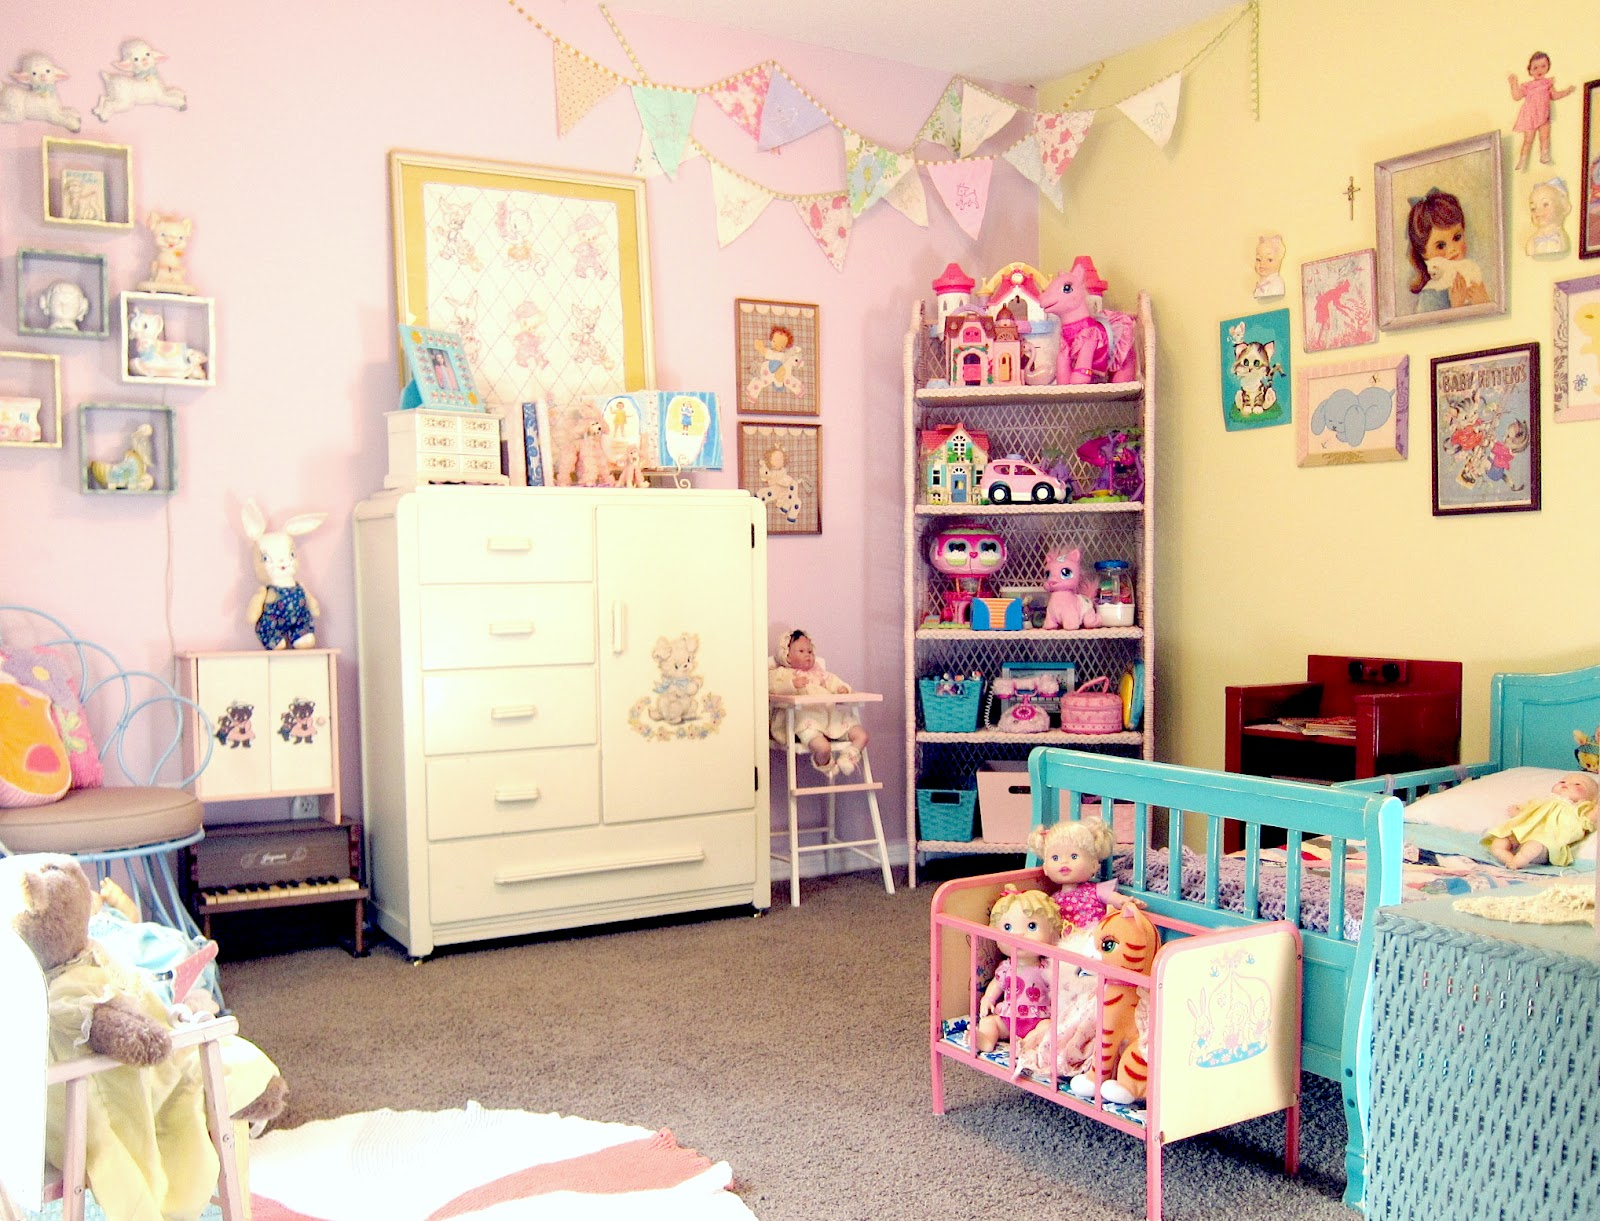 Corey Moortgat Collage Artist Averys Big Girl Room